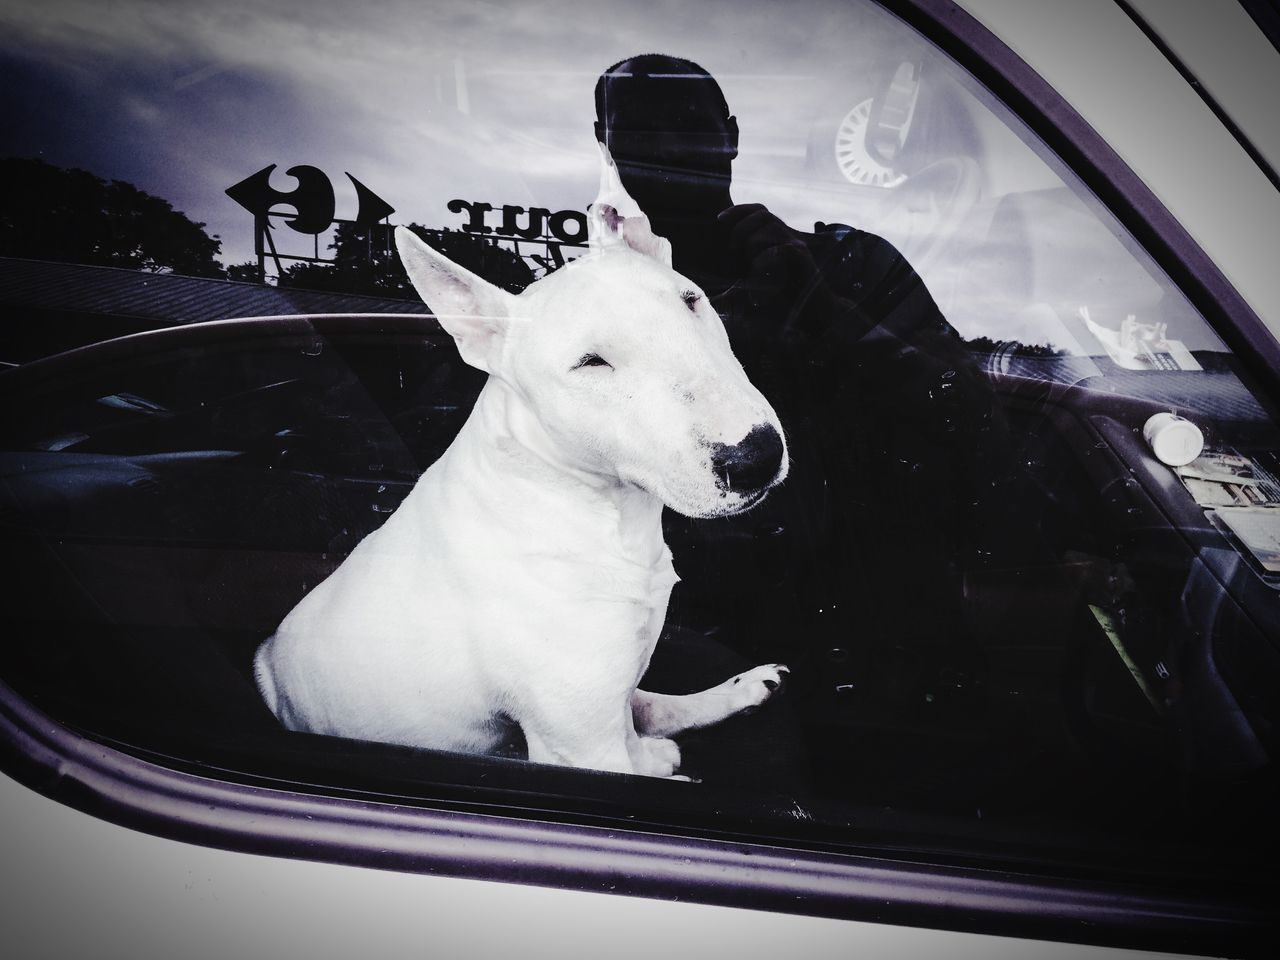 Reflection of man on glass window with bull terrier sitting in car